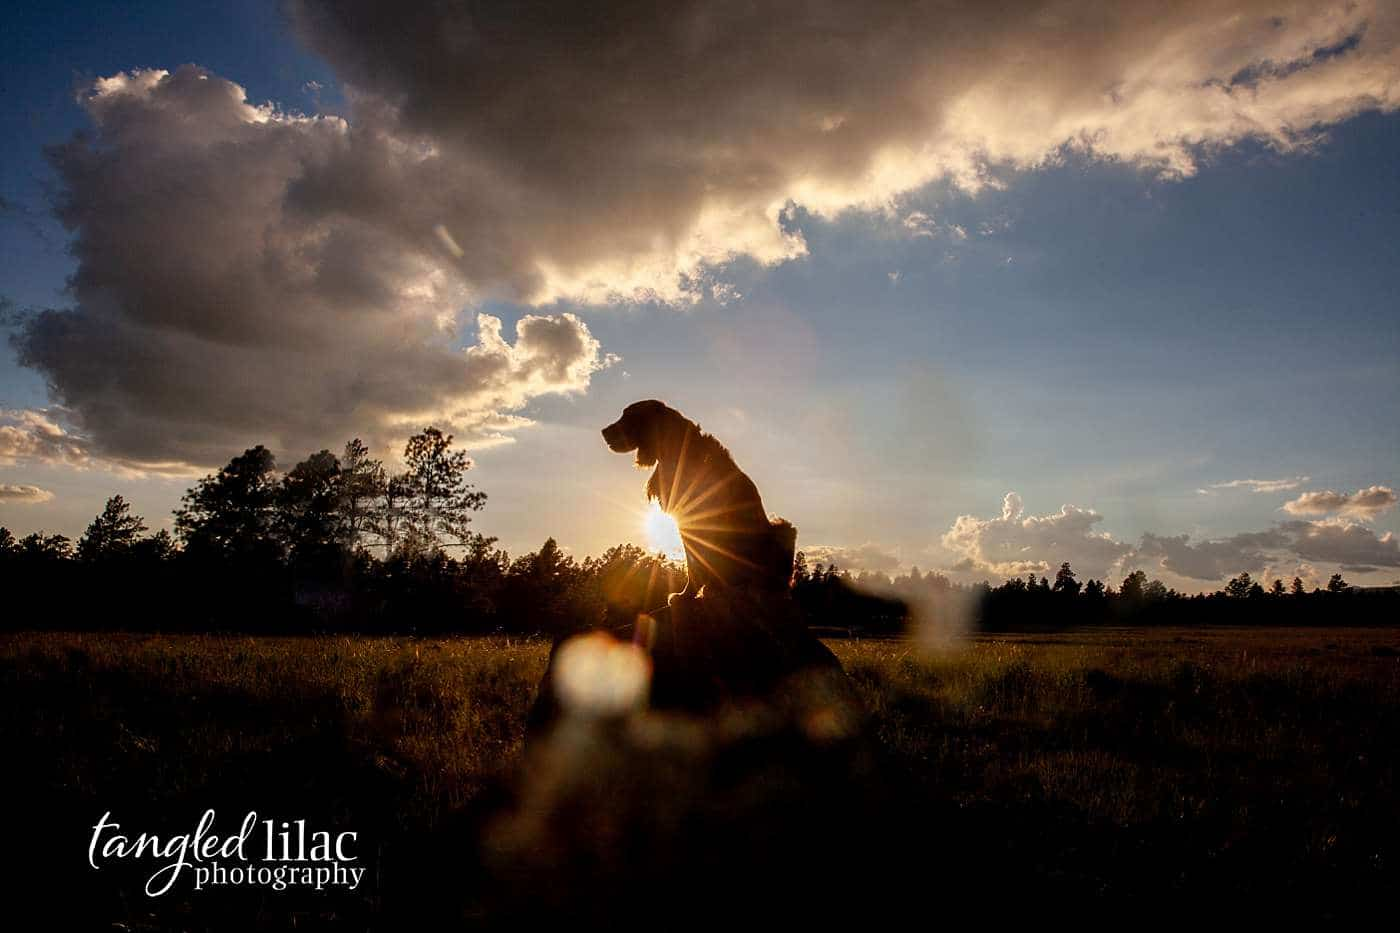 A moody dog portrait at sunset using the body as a silhouette